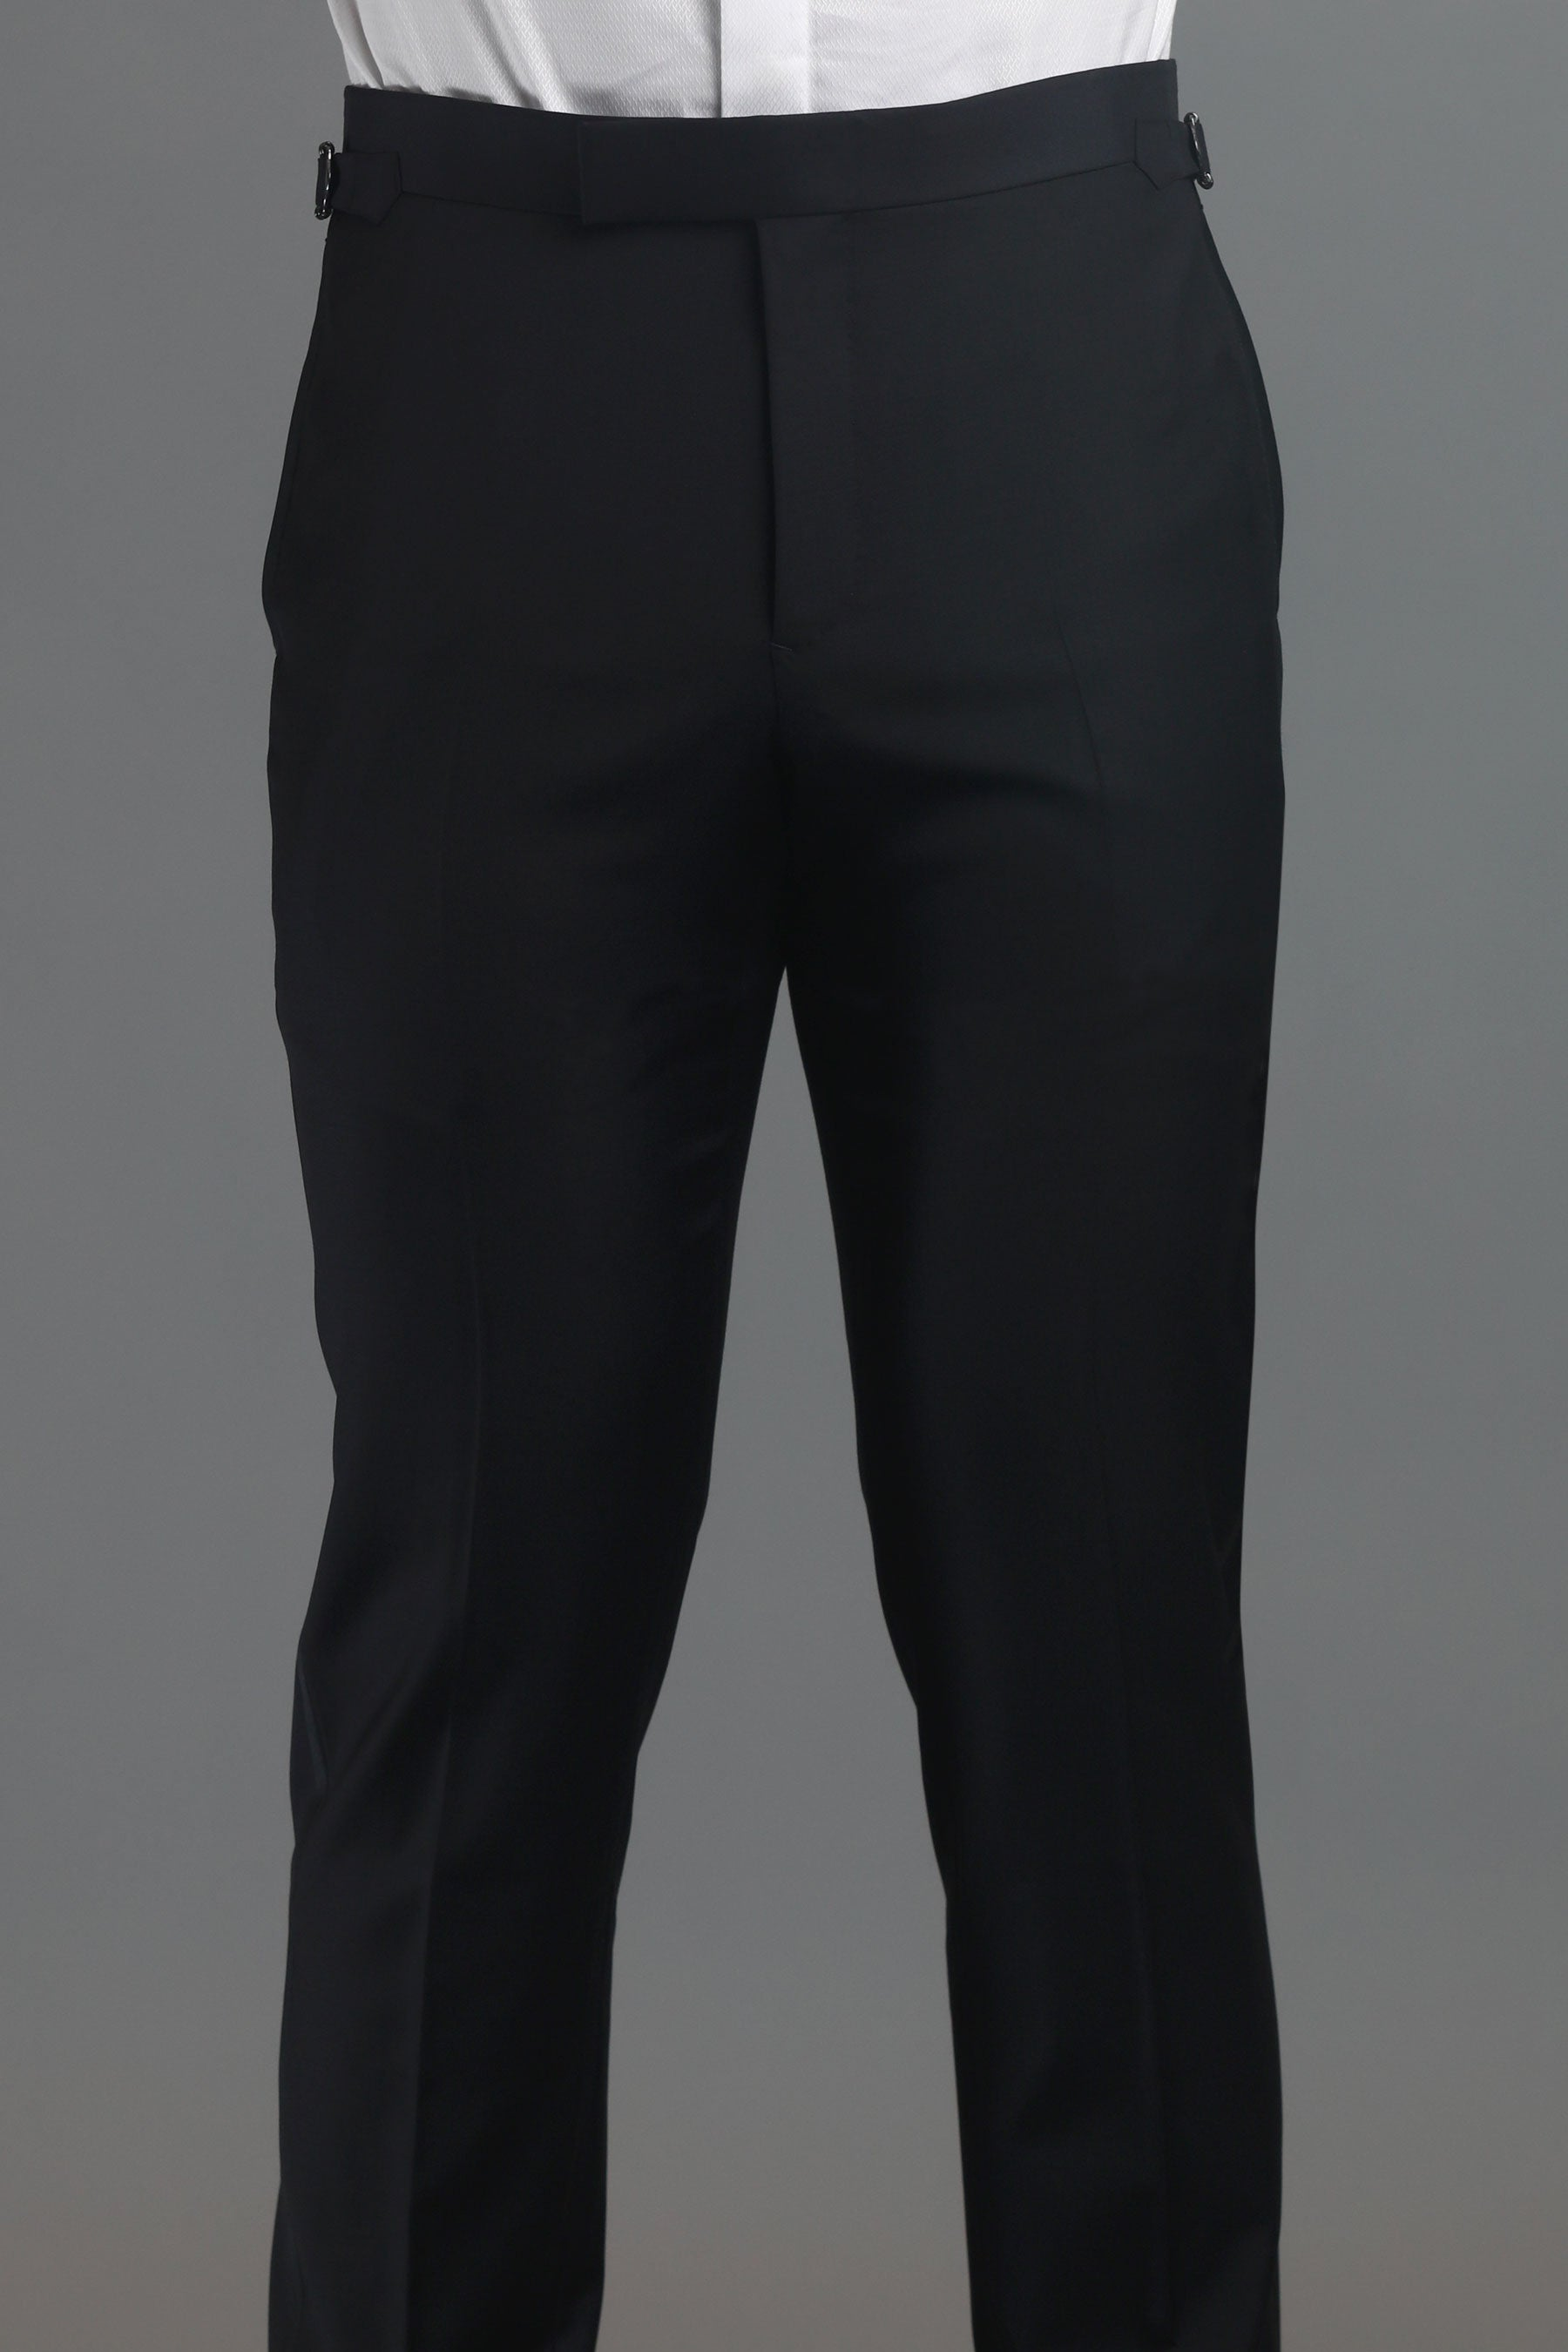 Black Twill Wool Dress Trousers